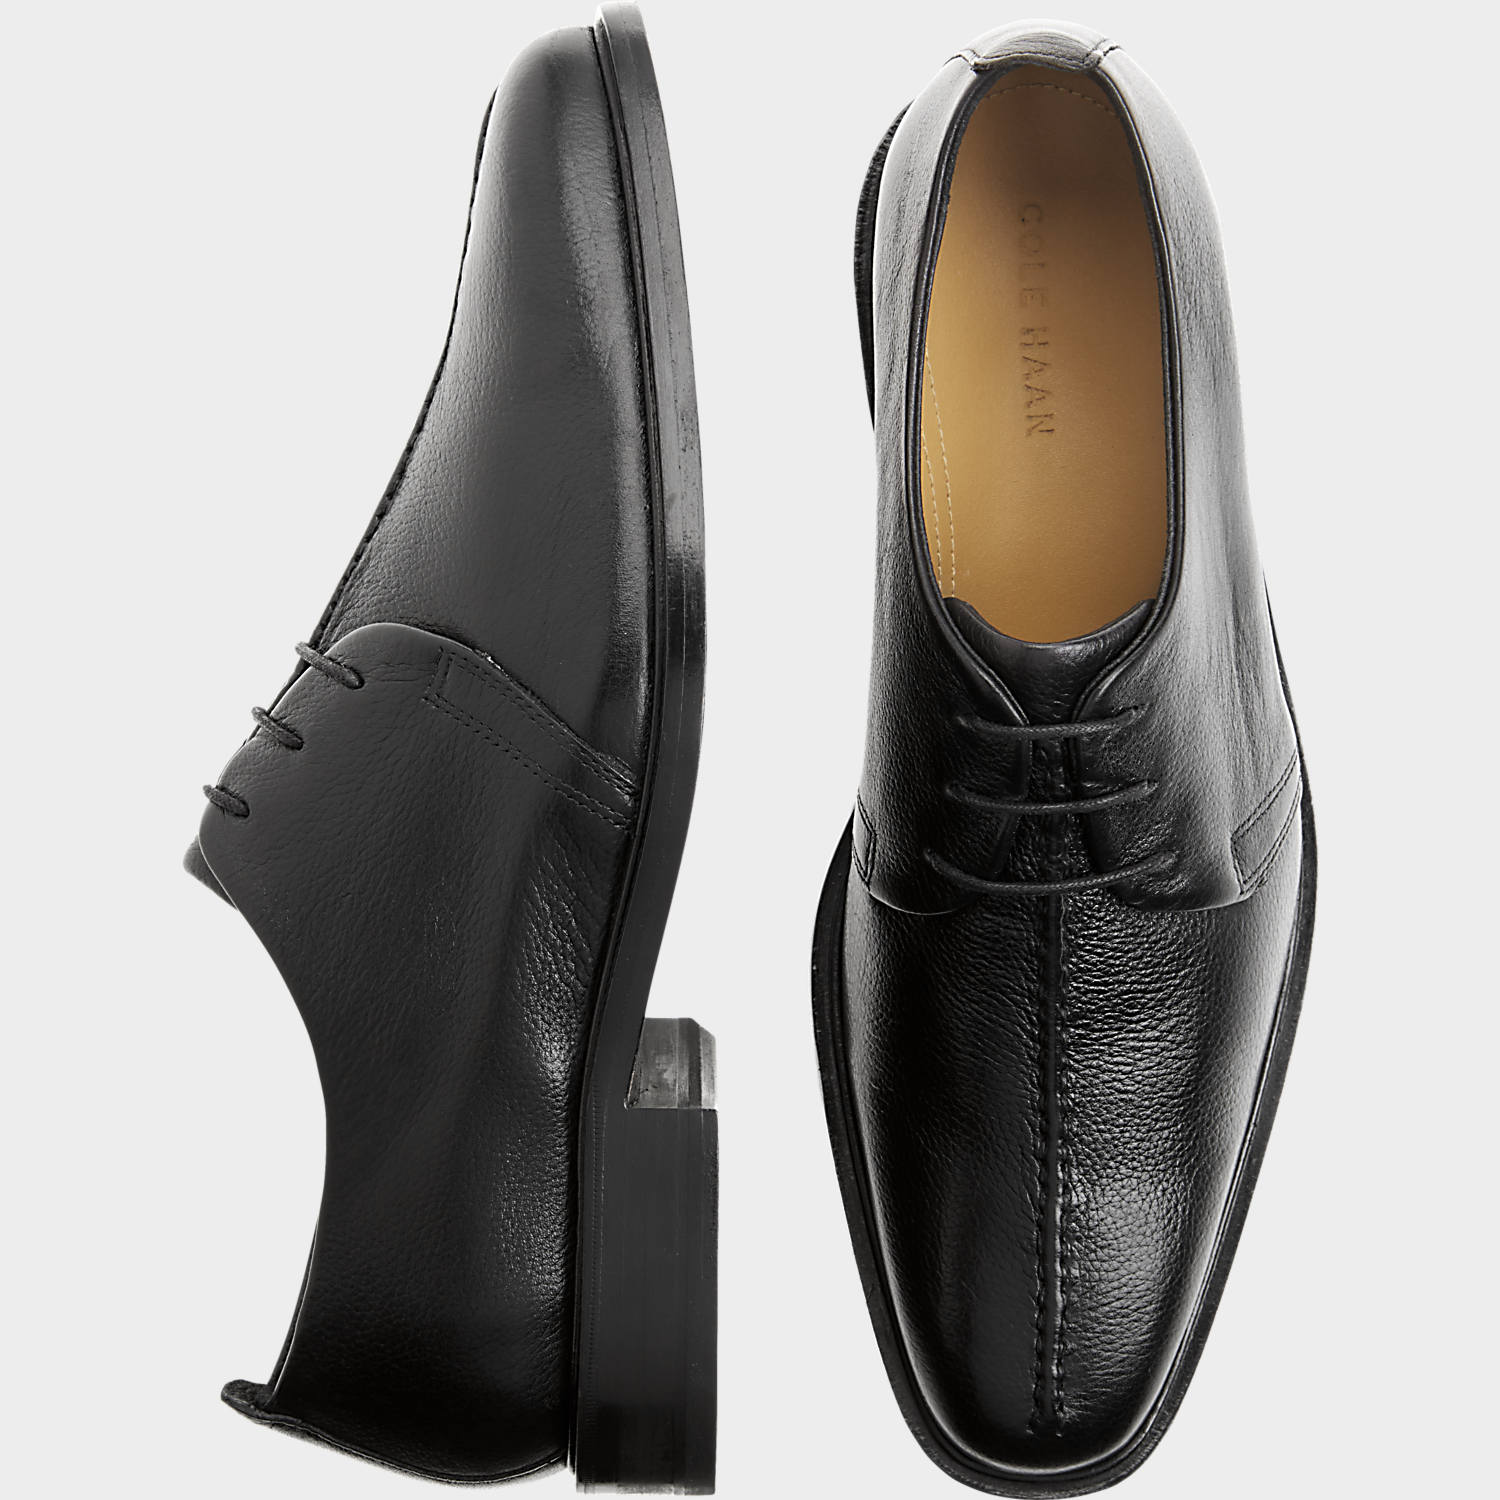 Cole haan black leather gloves - See Stylist Approved Outfits For This Item